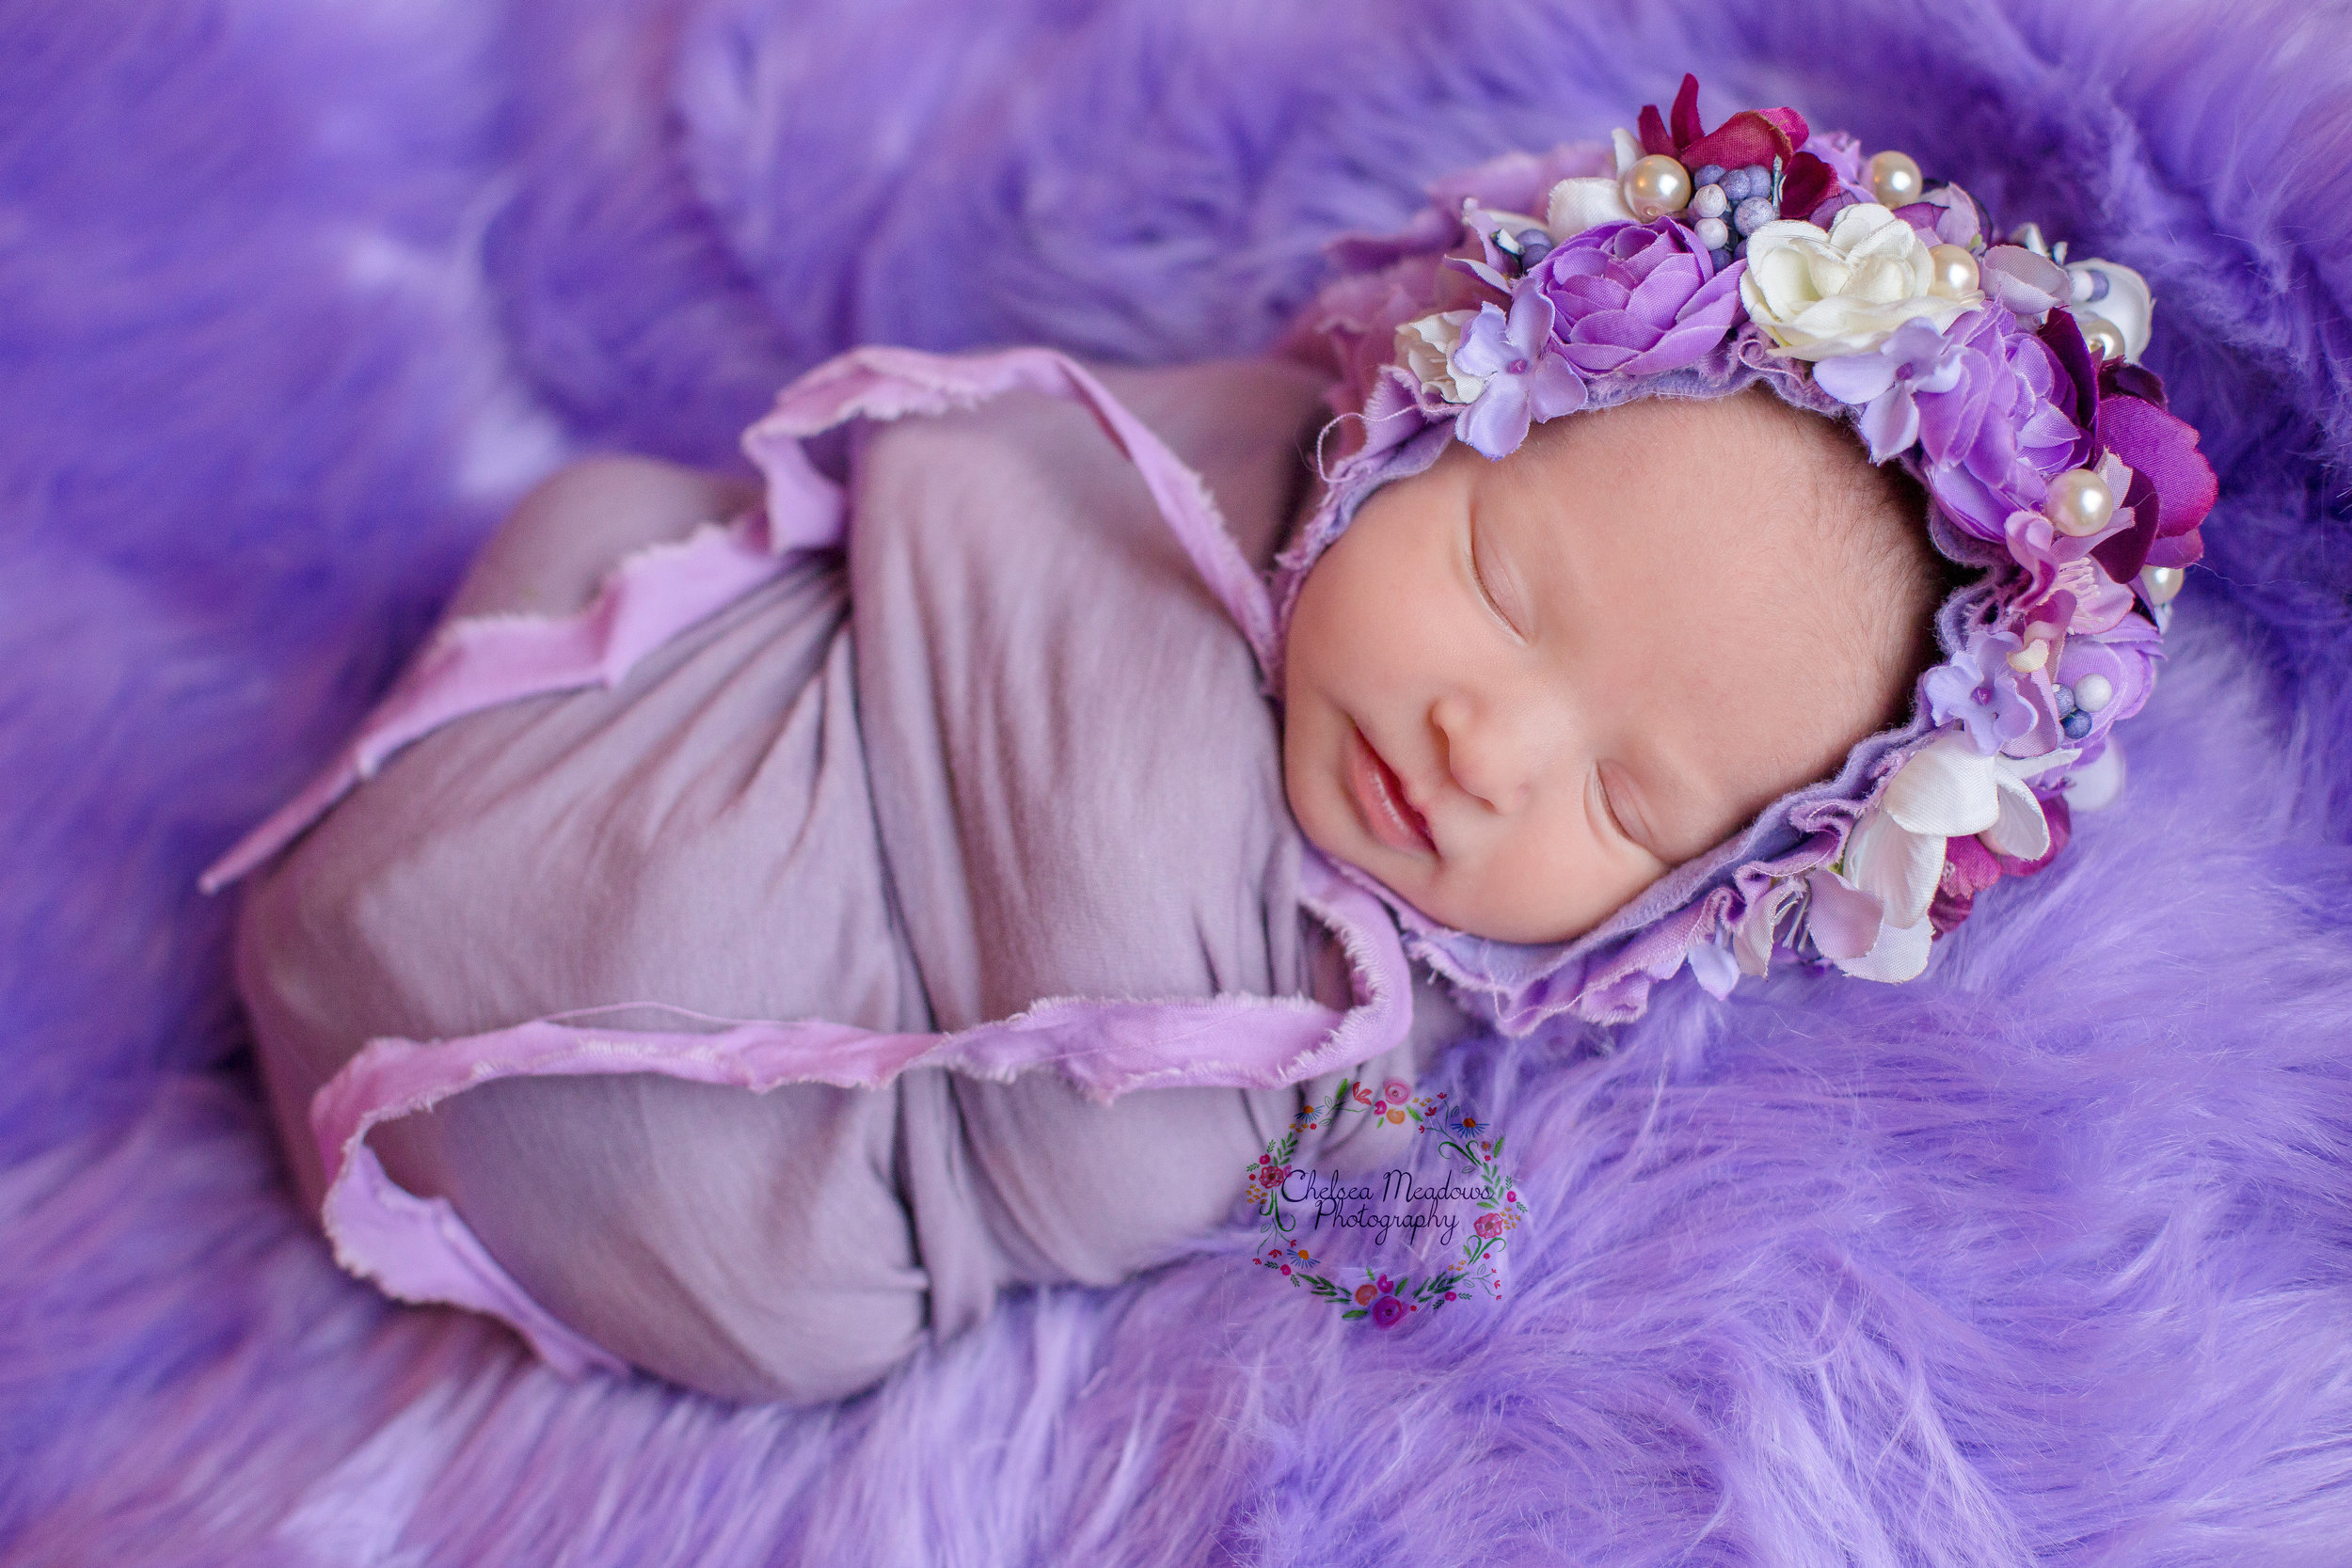 Tessa Newborn - Nashville Newborn Photographer - Chelsea Meadows Photography (30).jpg